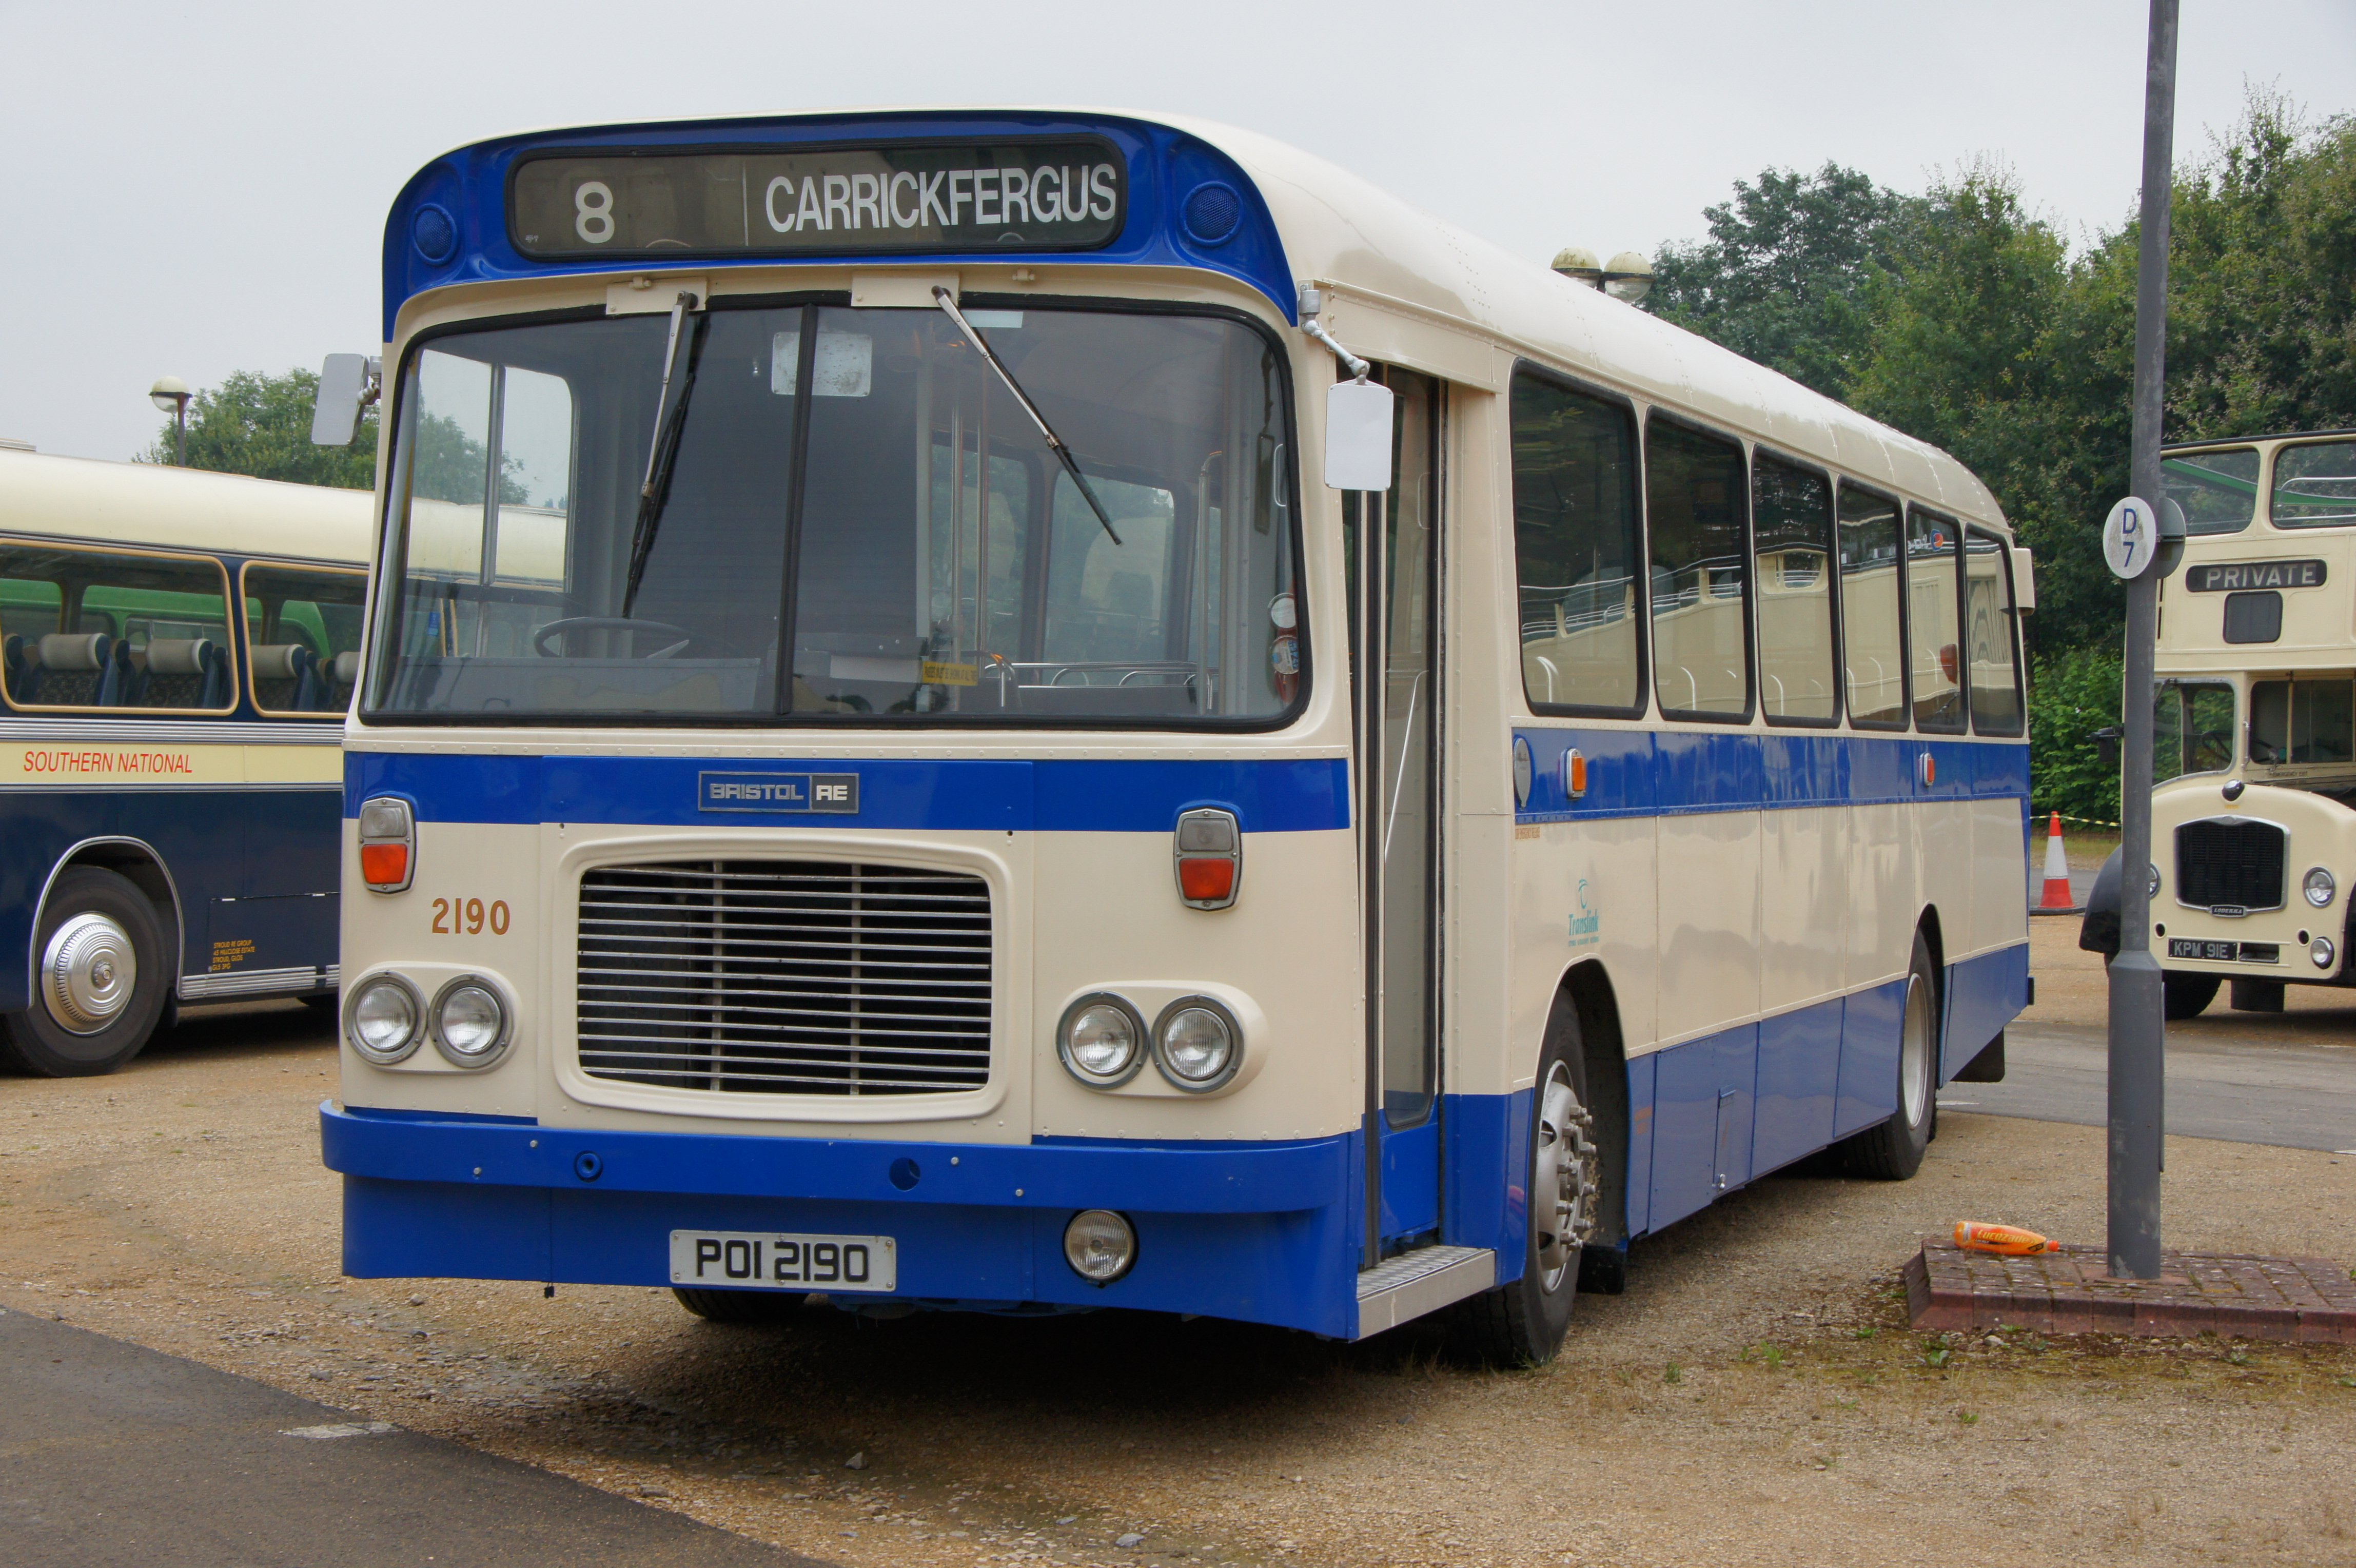 File:Ulsterbus bus 2190 (POI 2190), 2012 Bristol Vintage Bus Group open